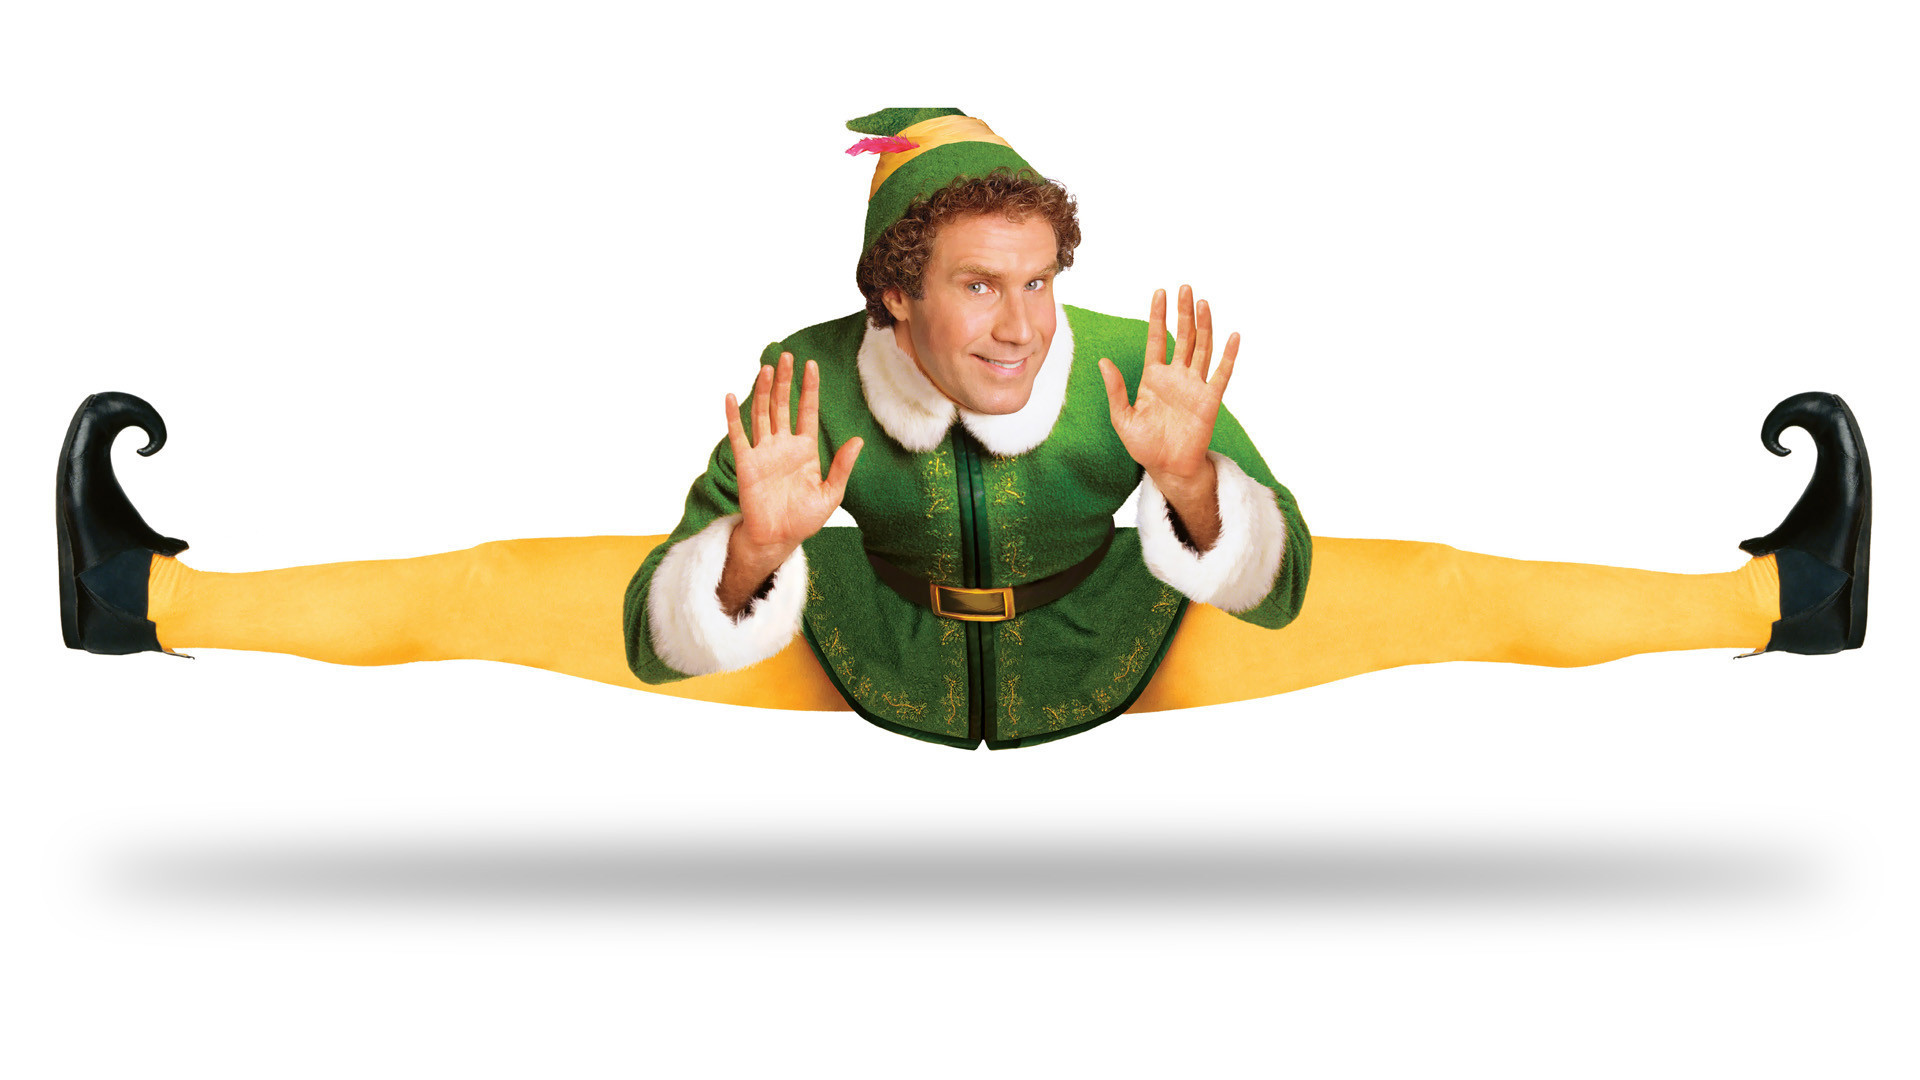 Elf The Movie Quotes Wallpapers Elf Movie Wallpaper 56 Images